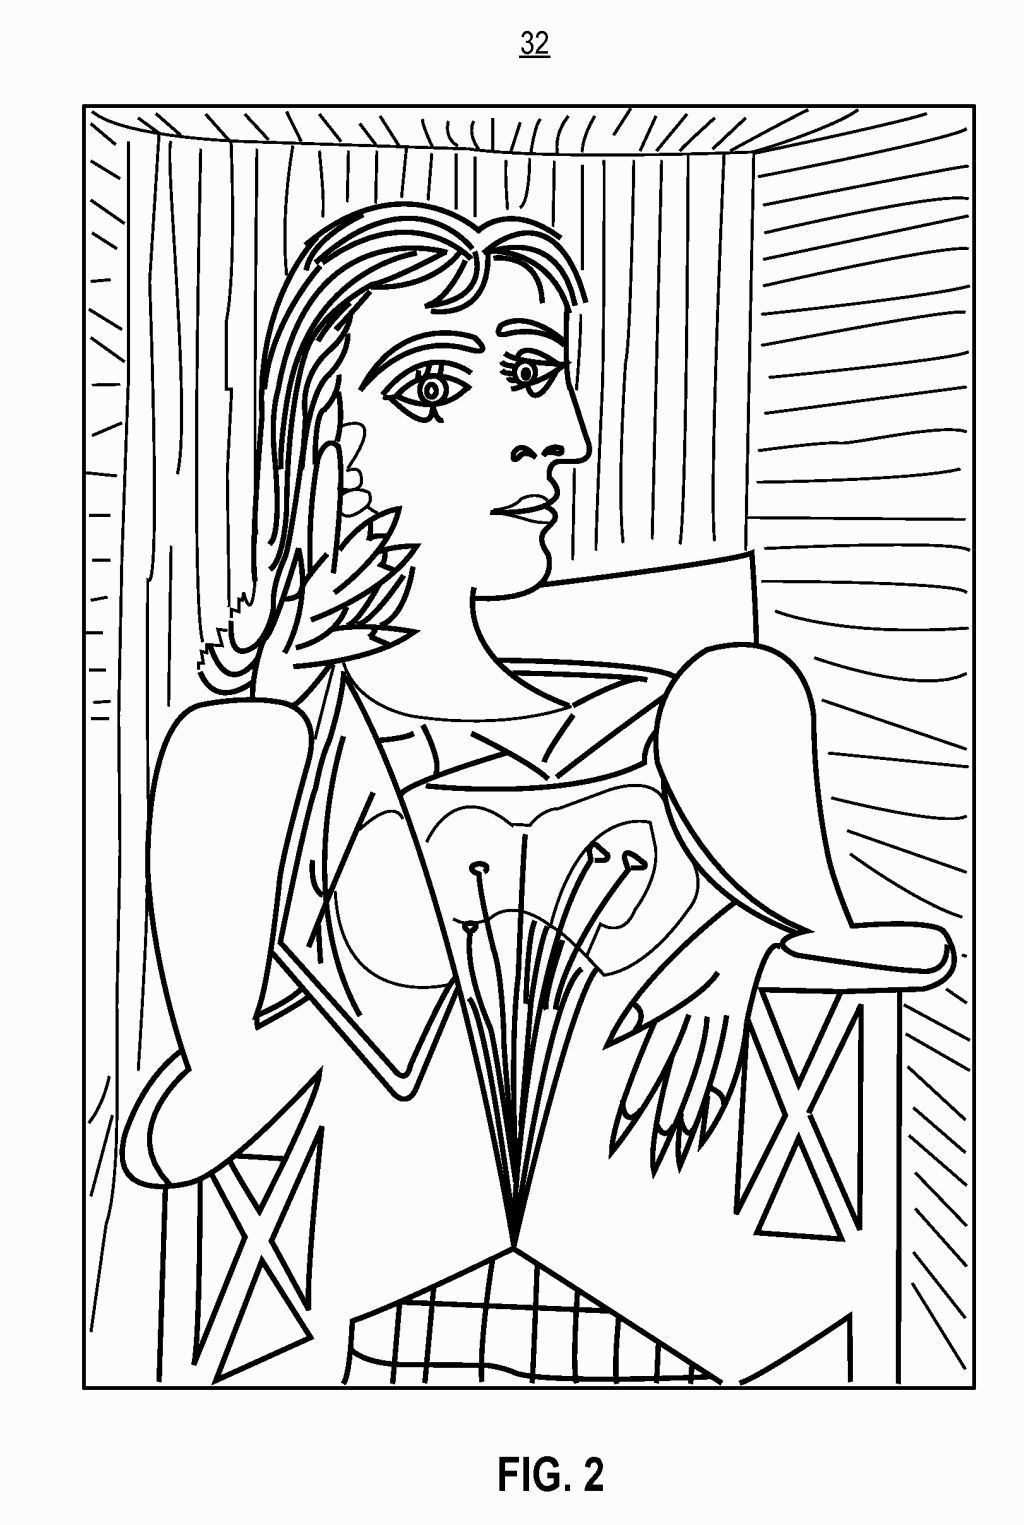 Pablo Picasso Coloring Pages Picasso Coloring Pages